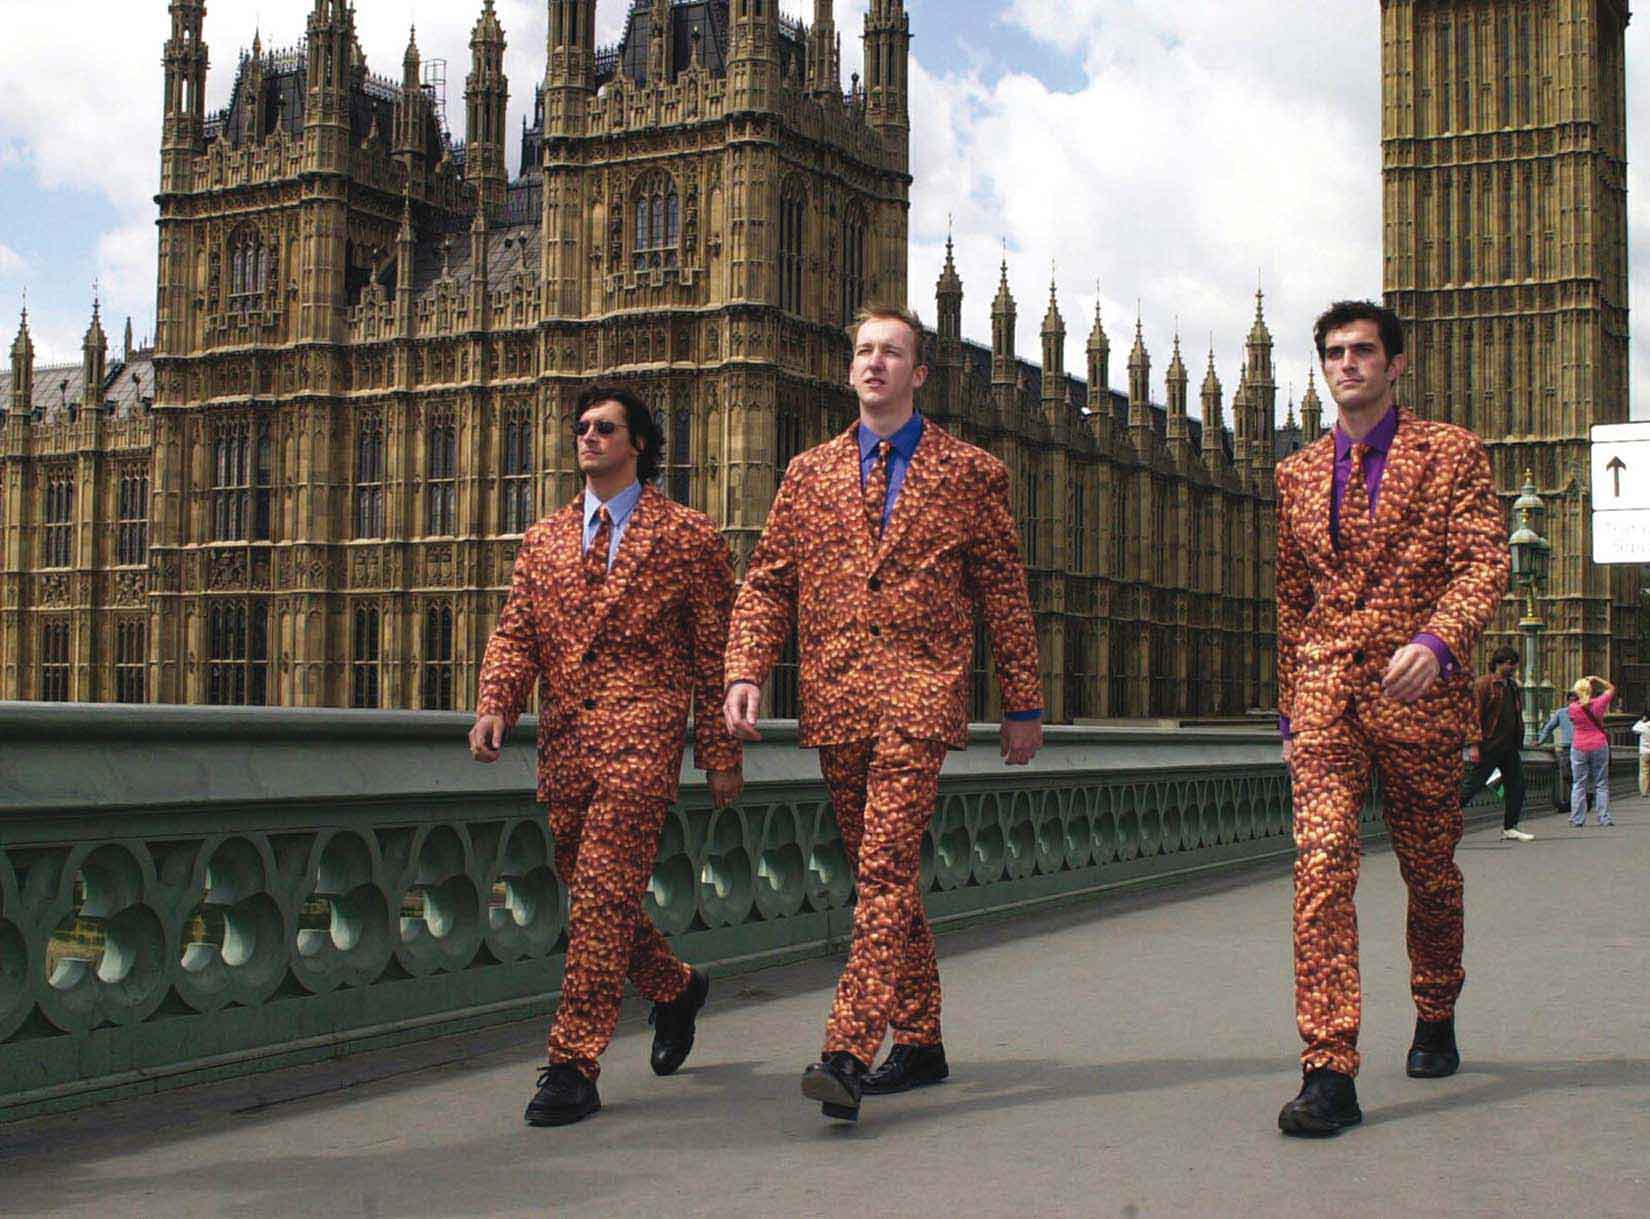 WMH-HOVIS-BEAN-SUITS-BIG-BEN-WEB image